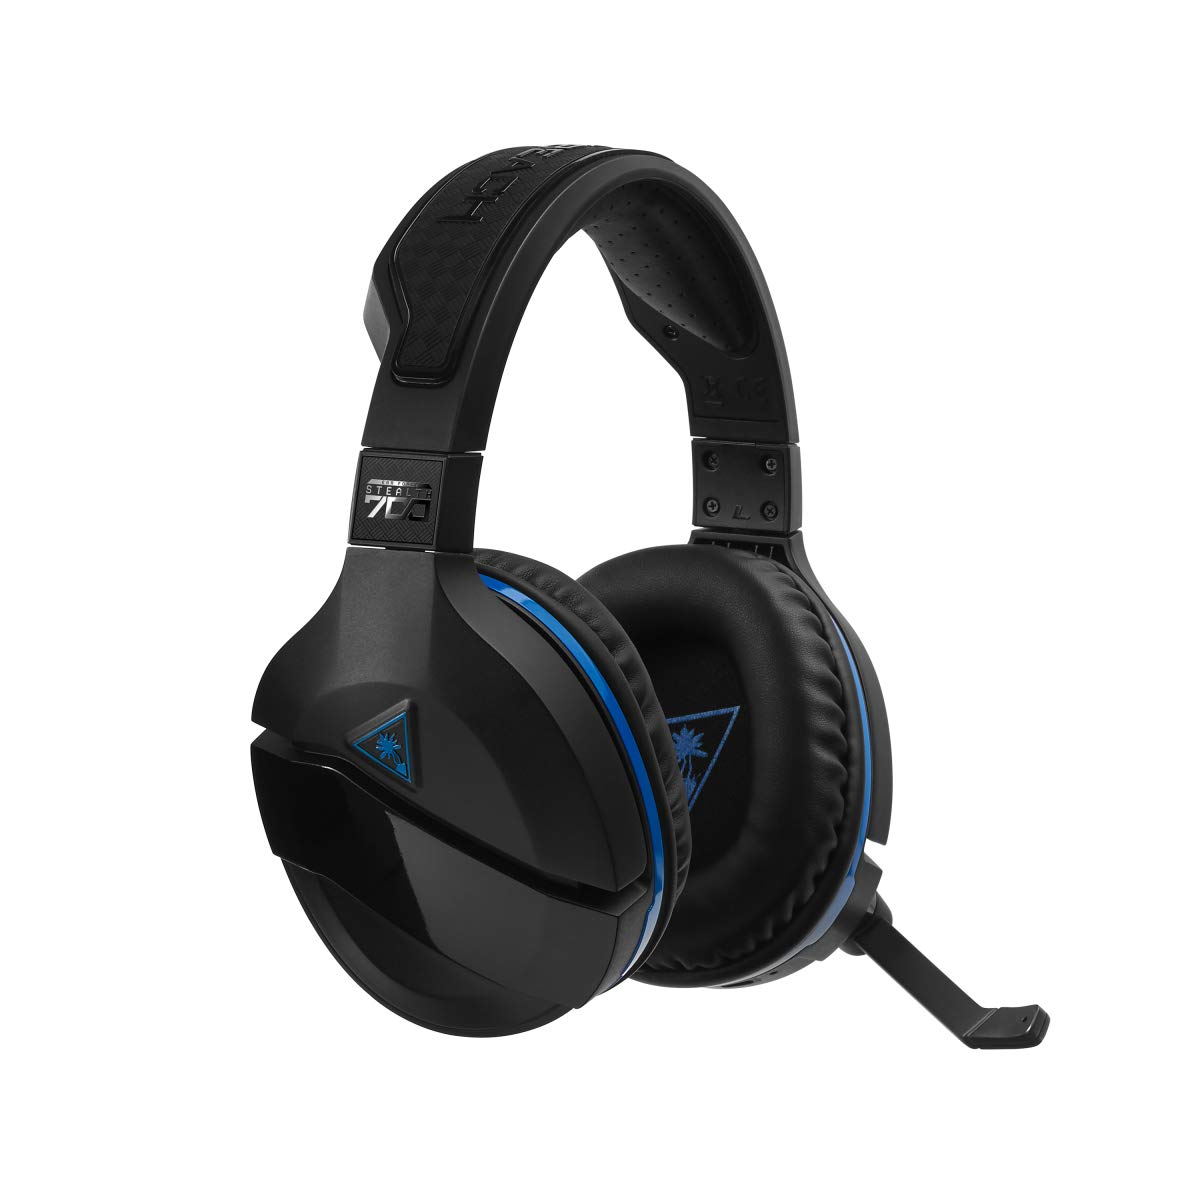 Turtle Beach Stealth 700 Premium Wireless Surround Sound Gaming Headset for PlayStation4 by Turtle Beach